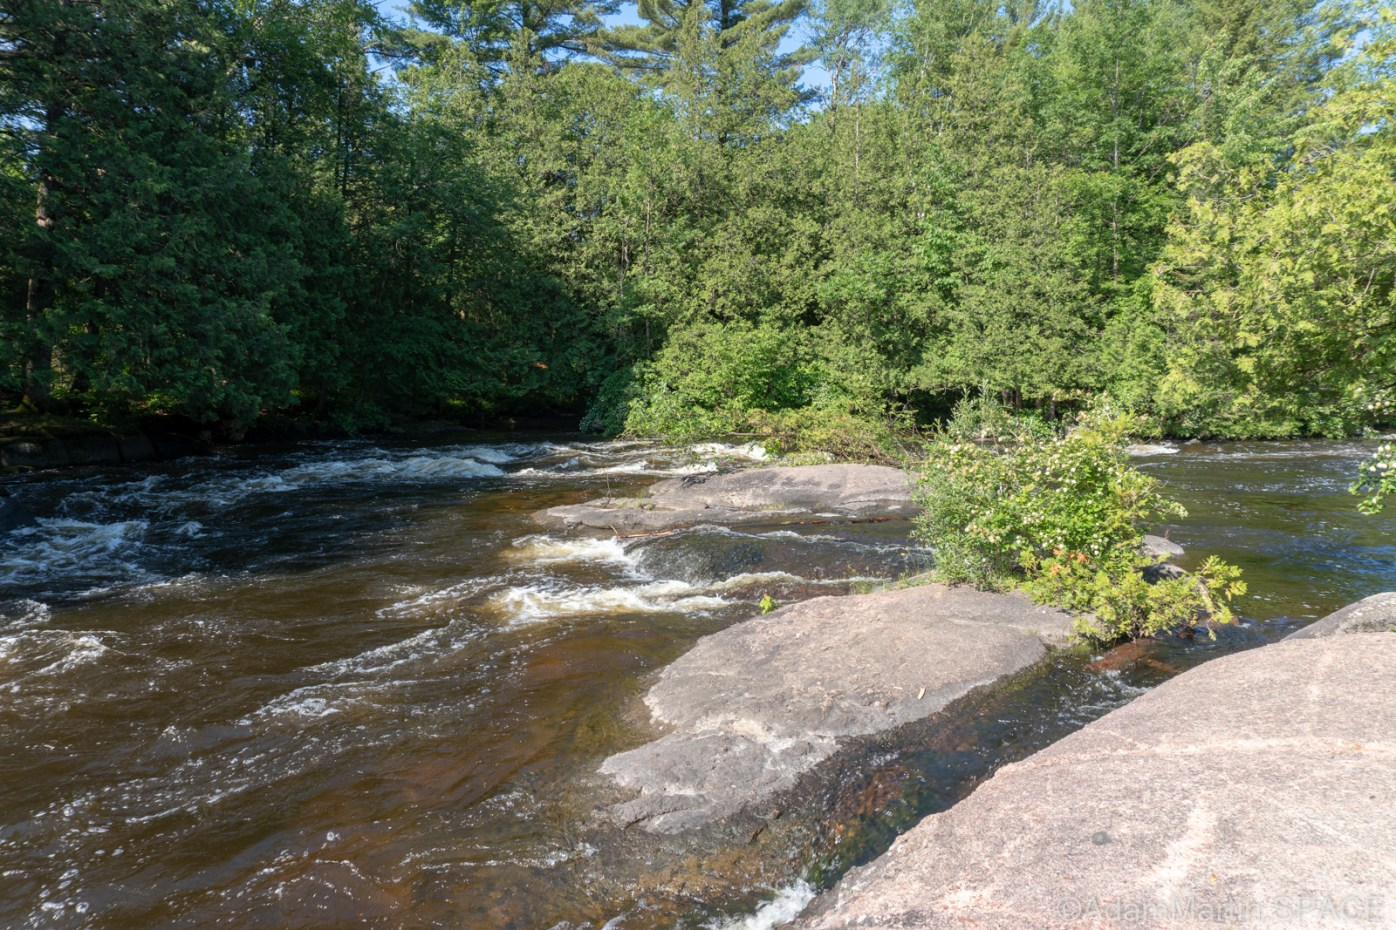 Gilmer Falls - Smaller rapids/falls above main drop